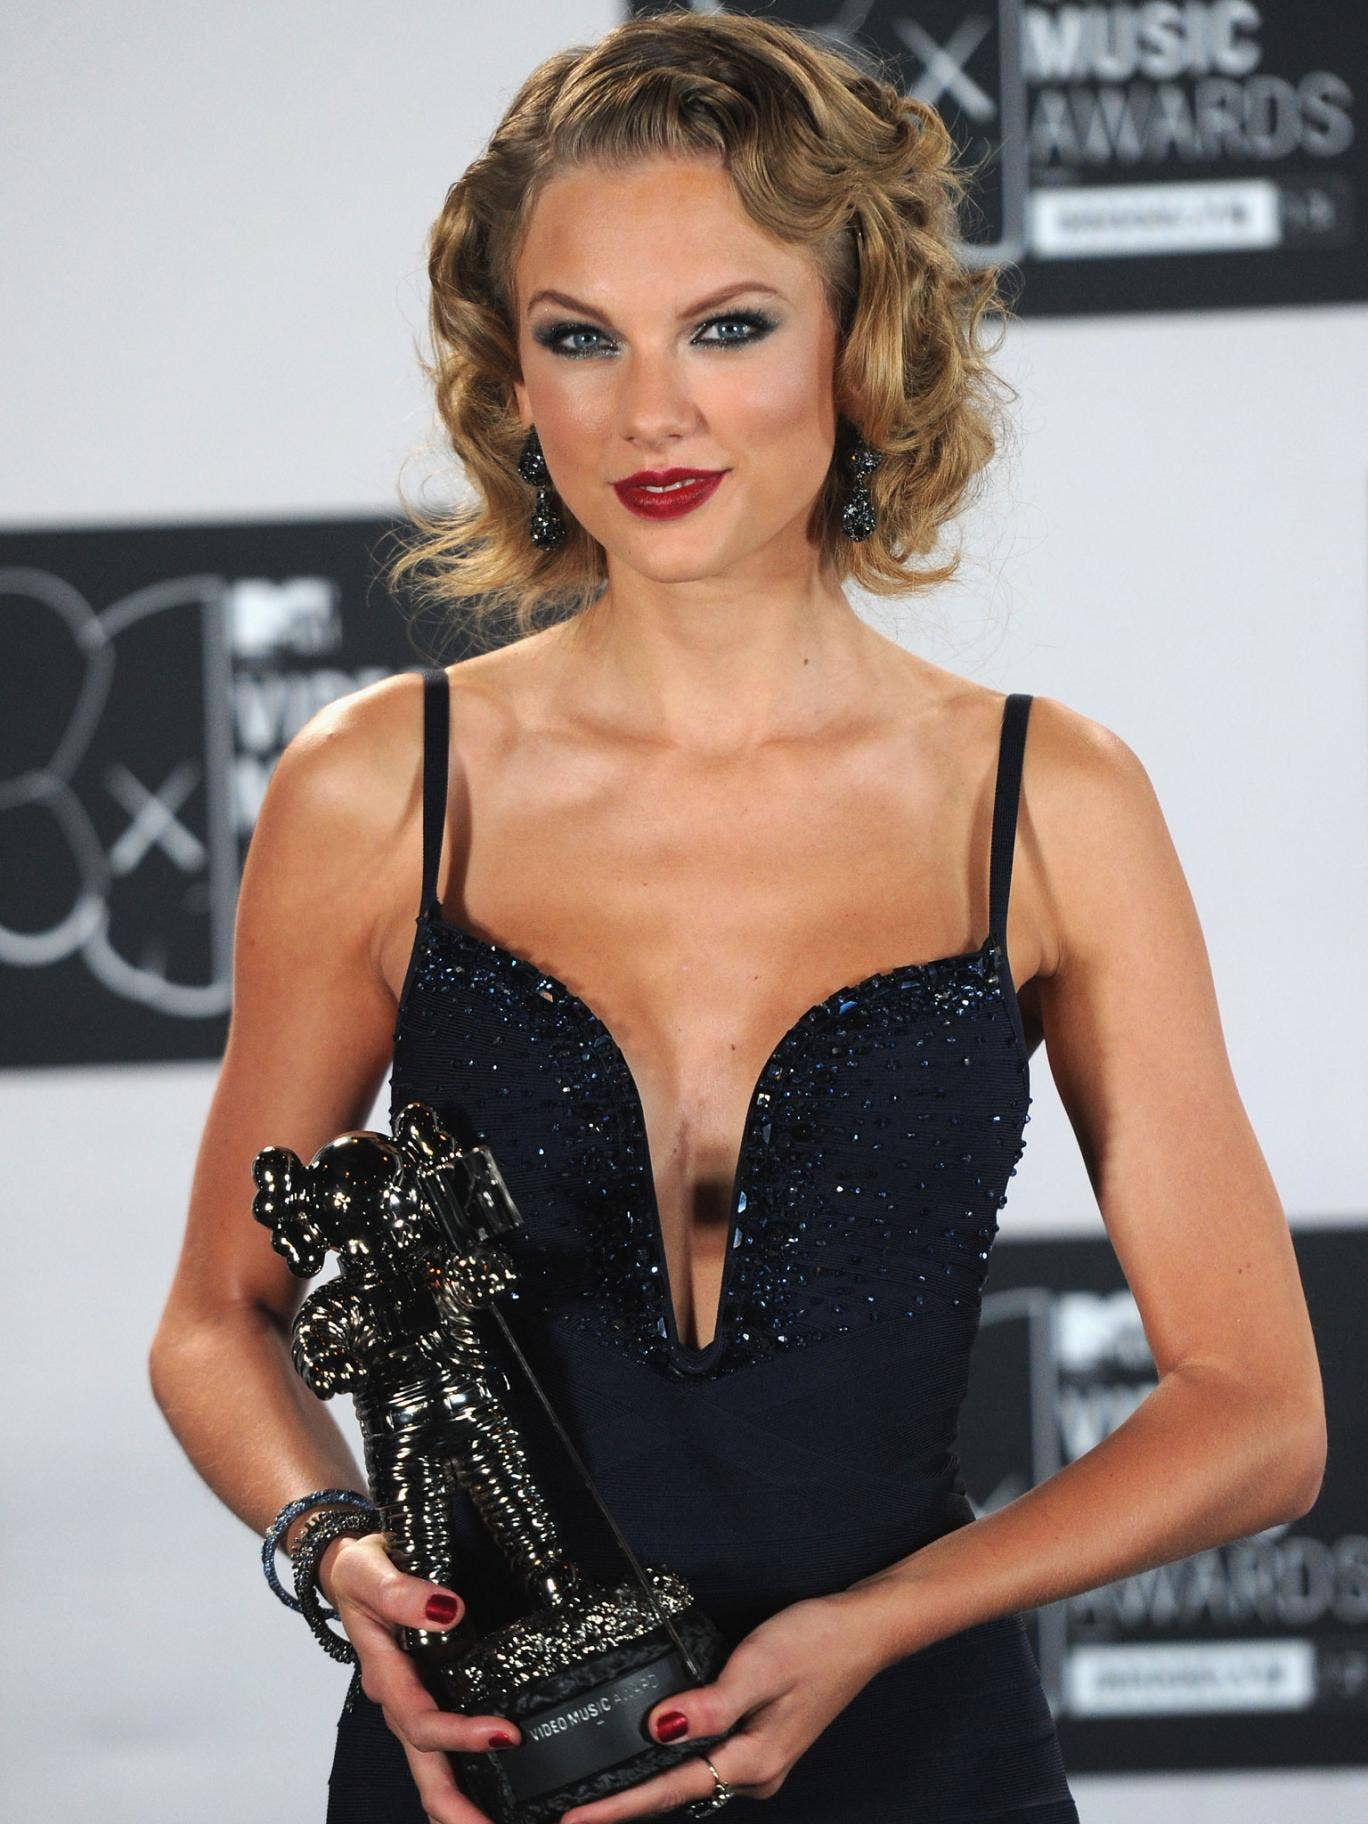 Taylor Swift at the Video Music Awards